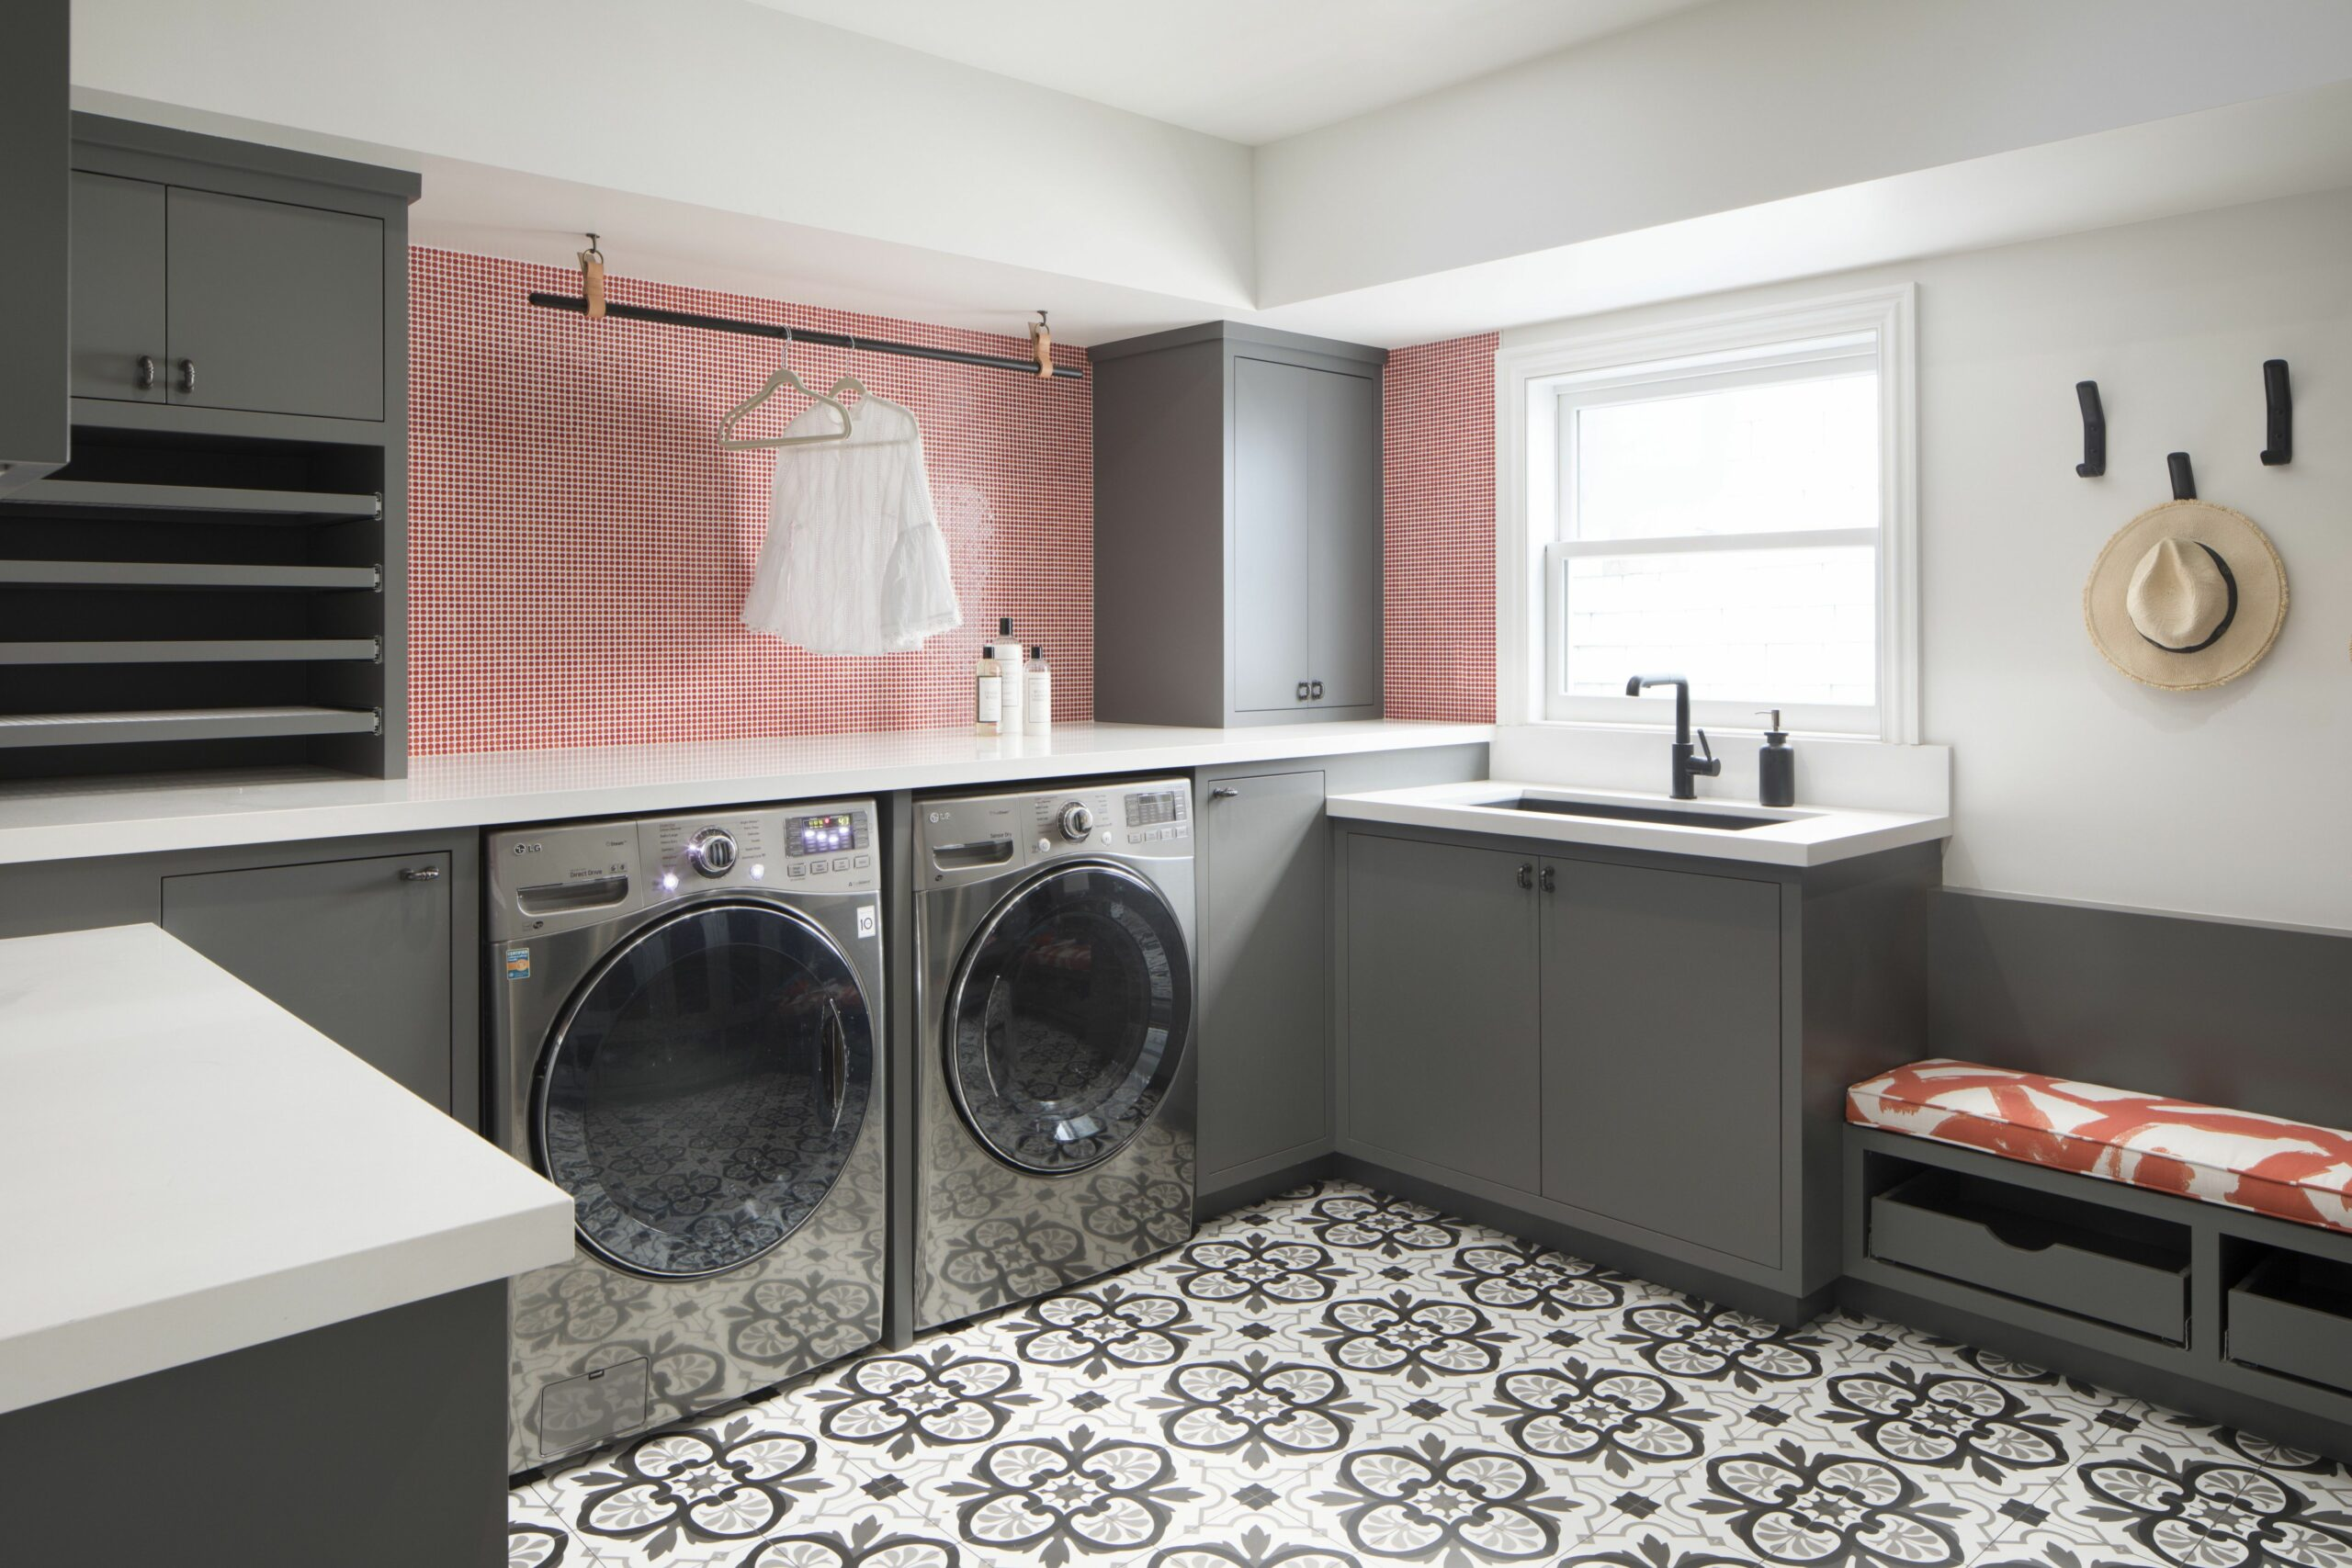 12 Best Laundry Rooms - Lovely & Functional Laundry Room Ideas